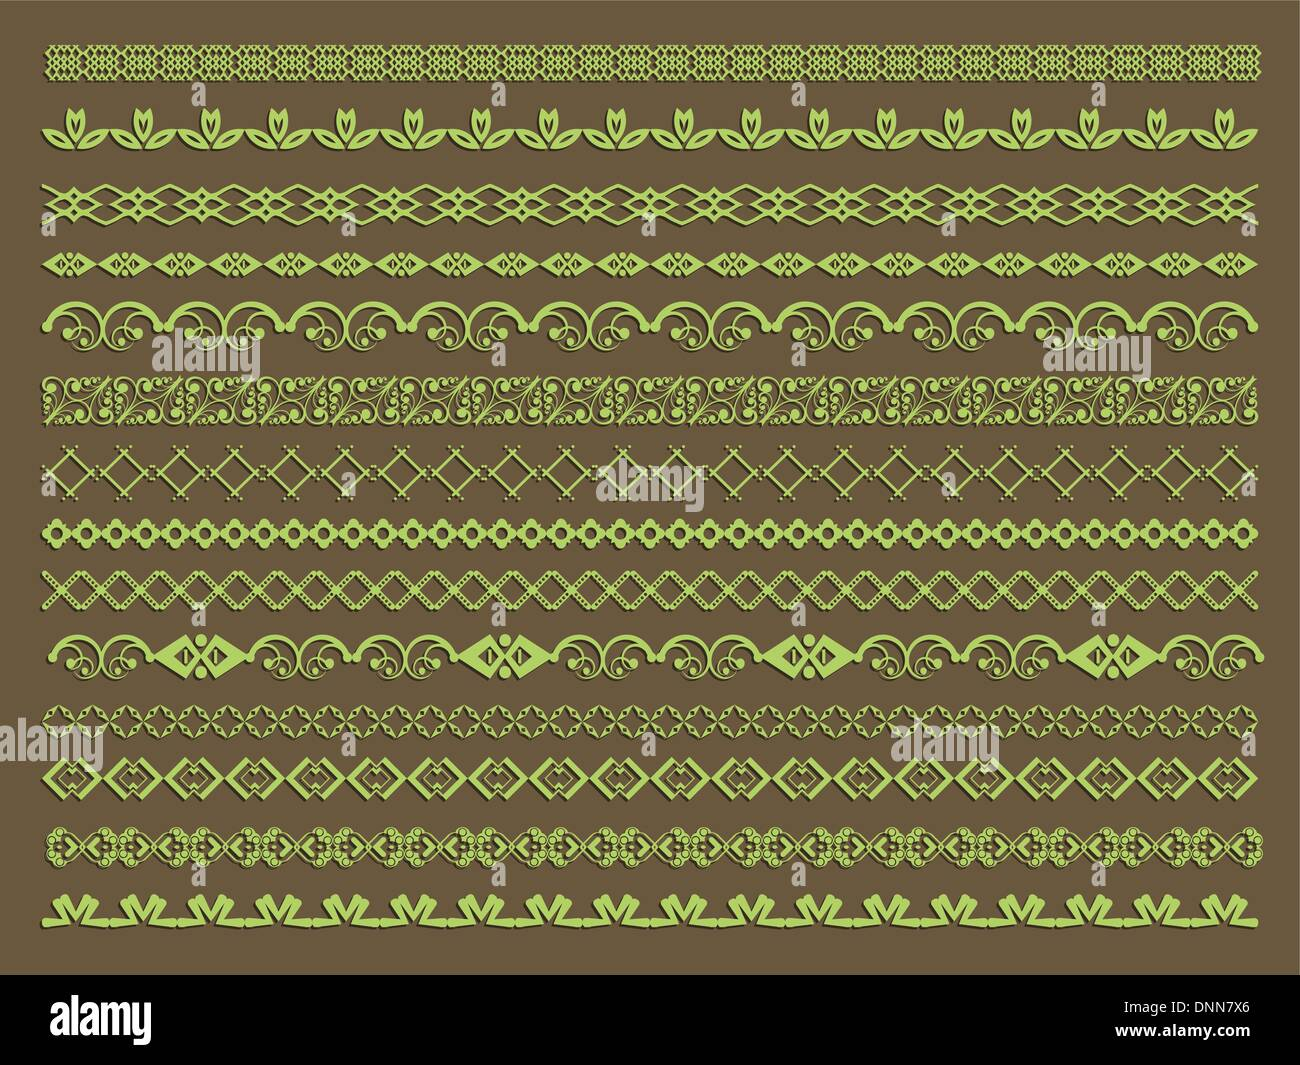 Large collection of decorative borders and page breaks - Stock Vector